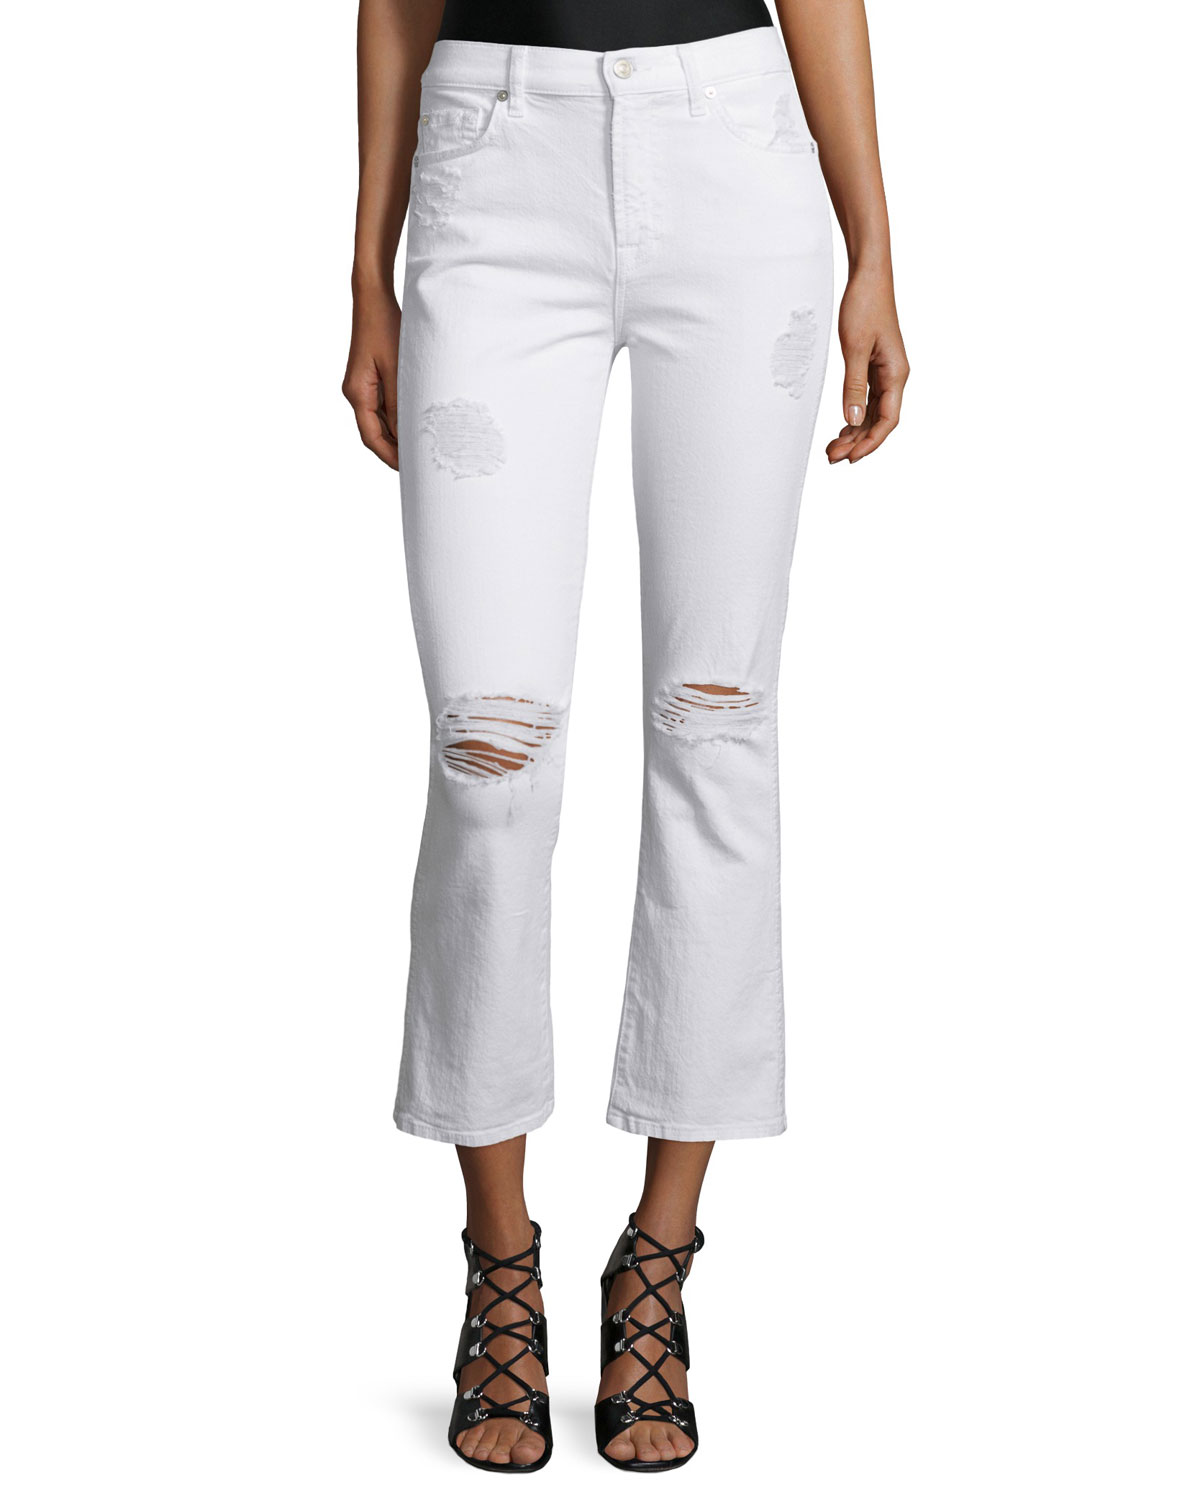 7 For All Mankind Mid-Rise Cropped Boot-Cut Jeans, Clean White 3, Size: 27